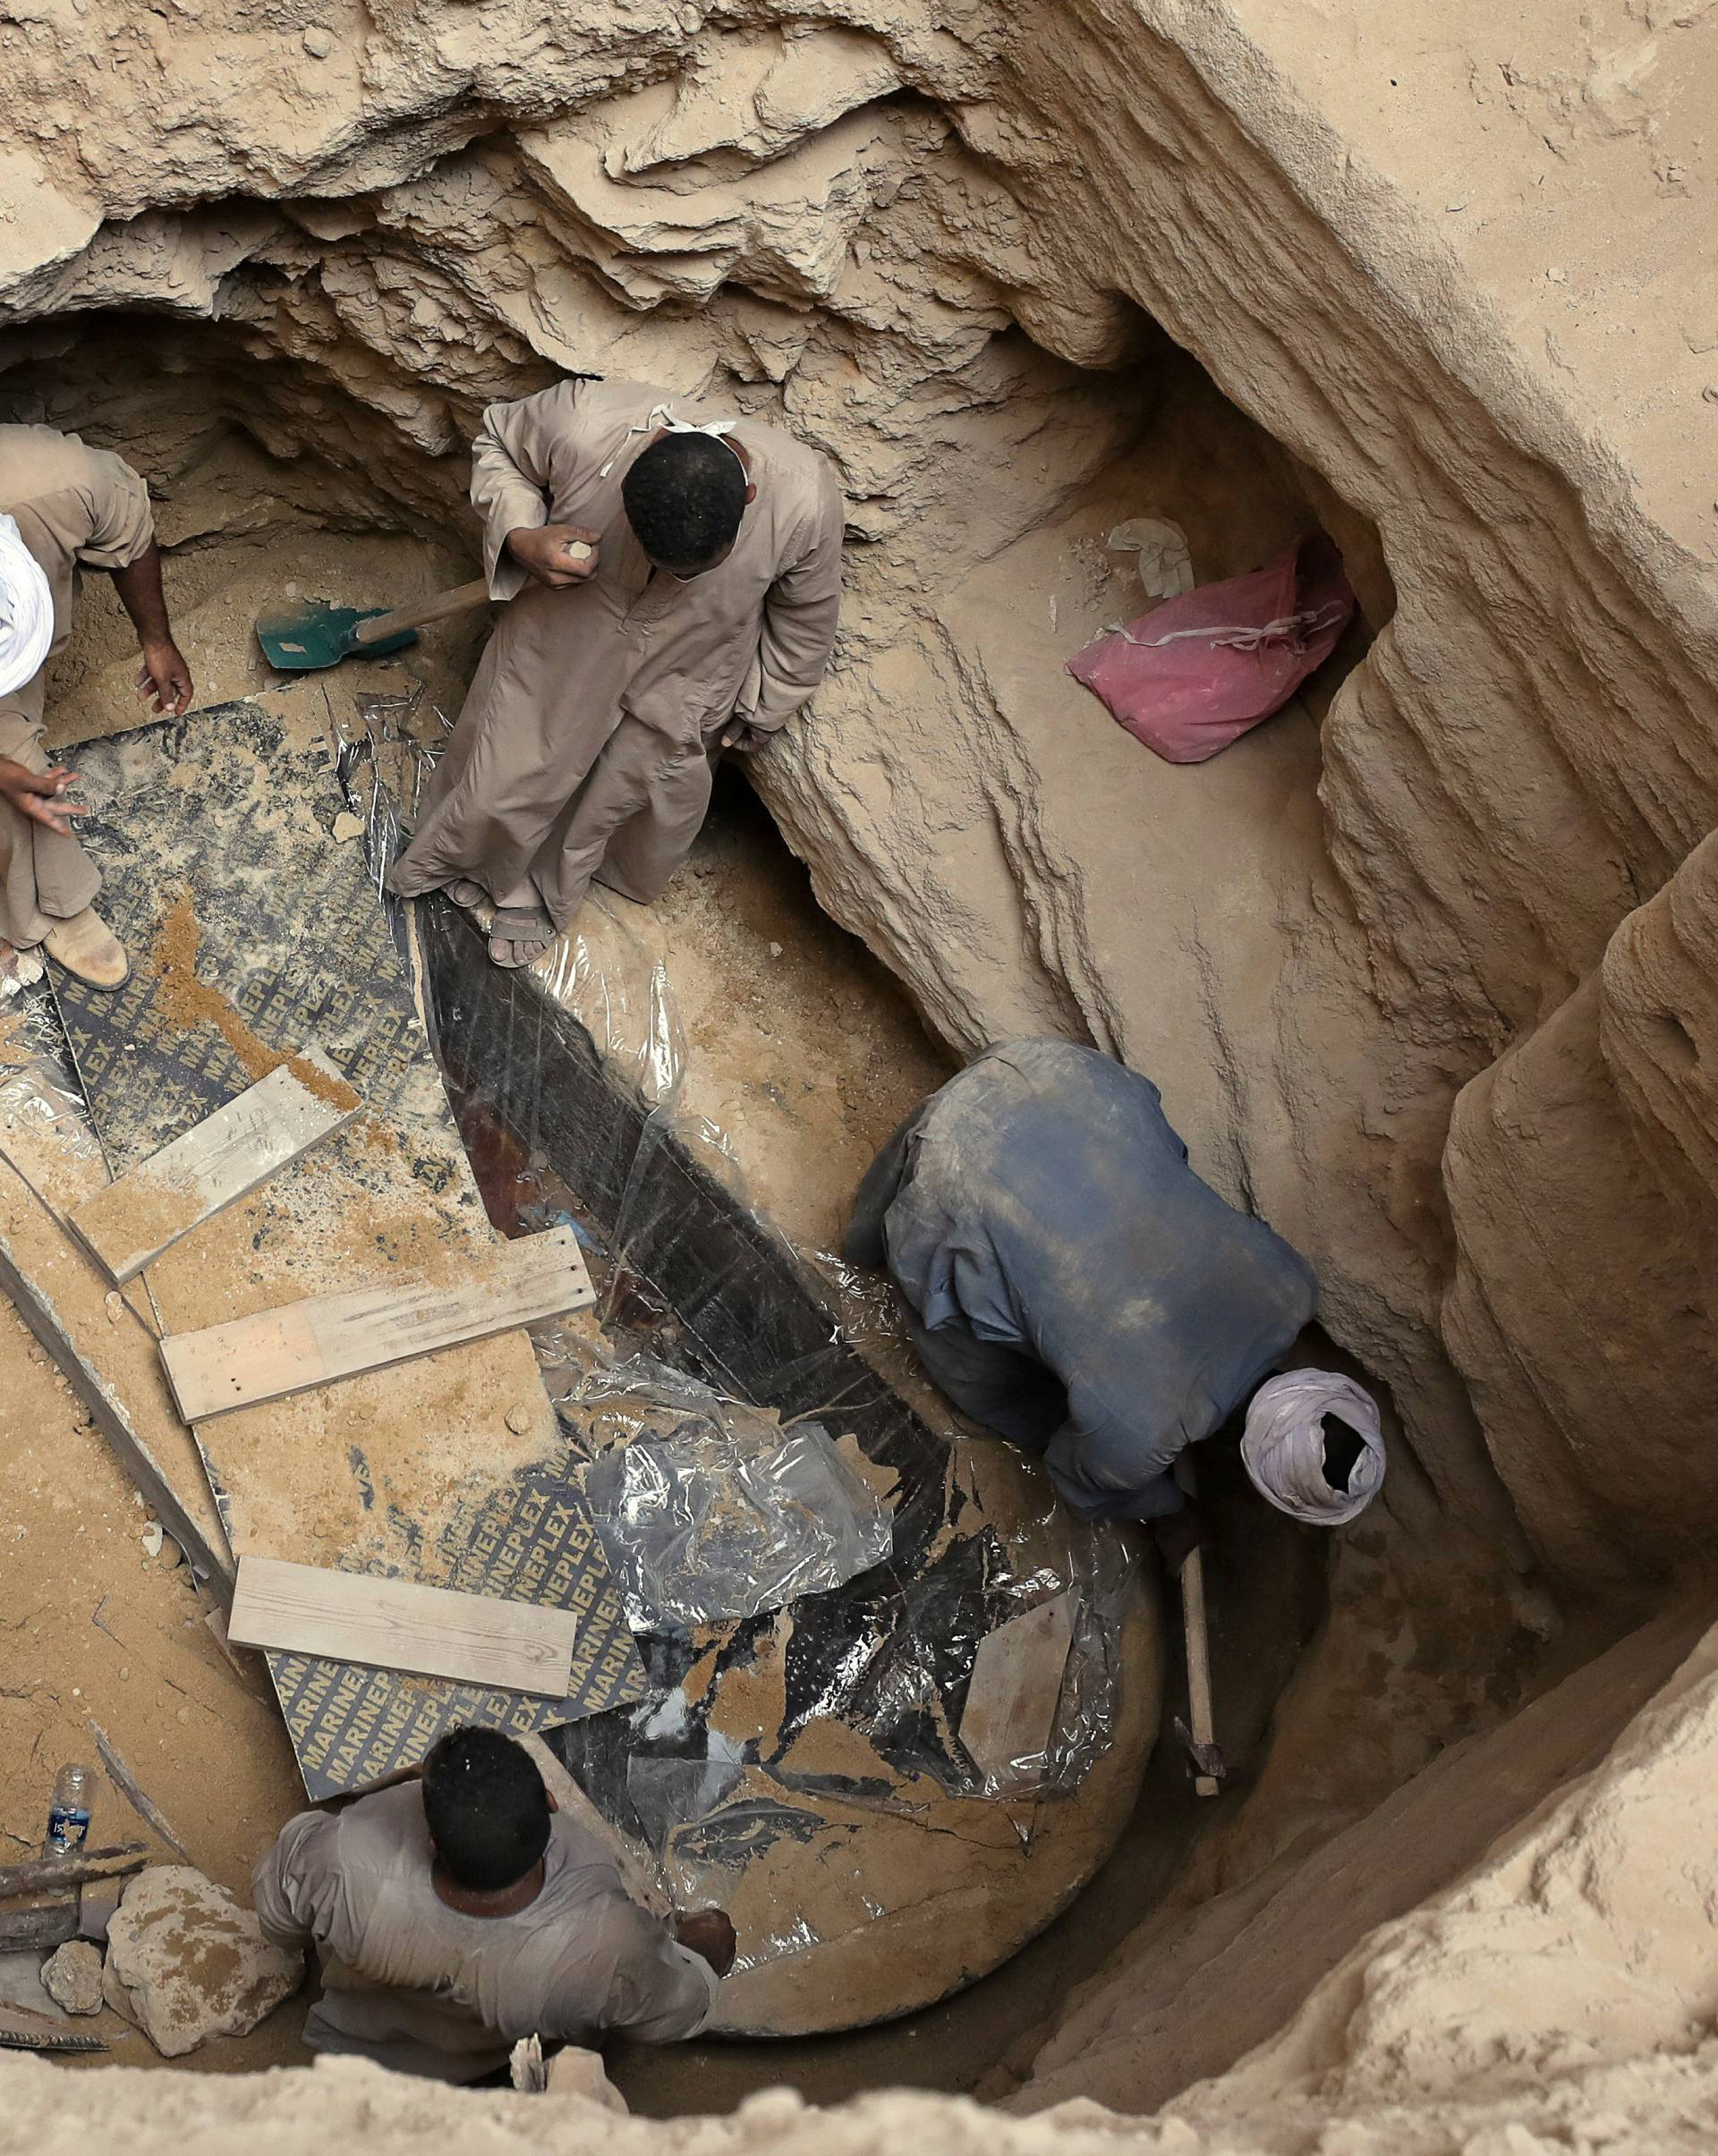 Archaeologists and workers unearth closed coffin containing three mummies with remains of three people in Alexandria